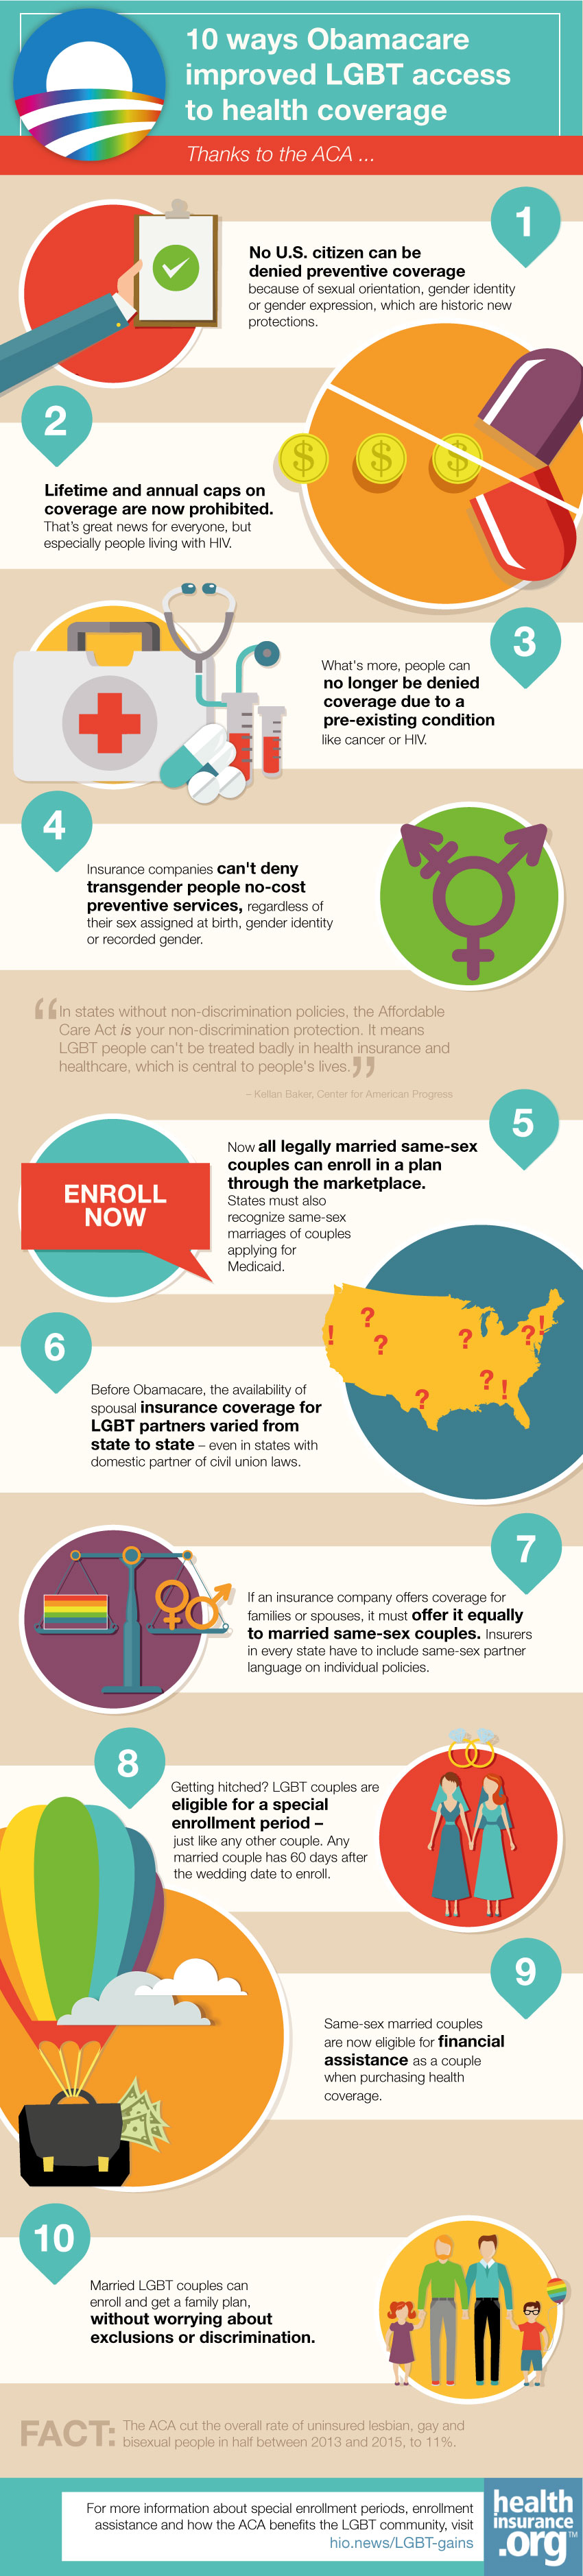 obamacare-lgbt-health-coverage-infographic